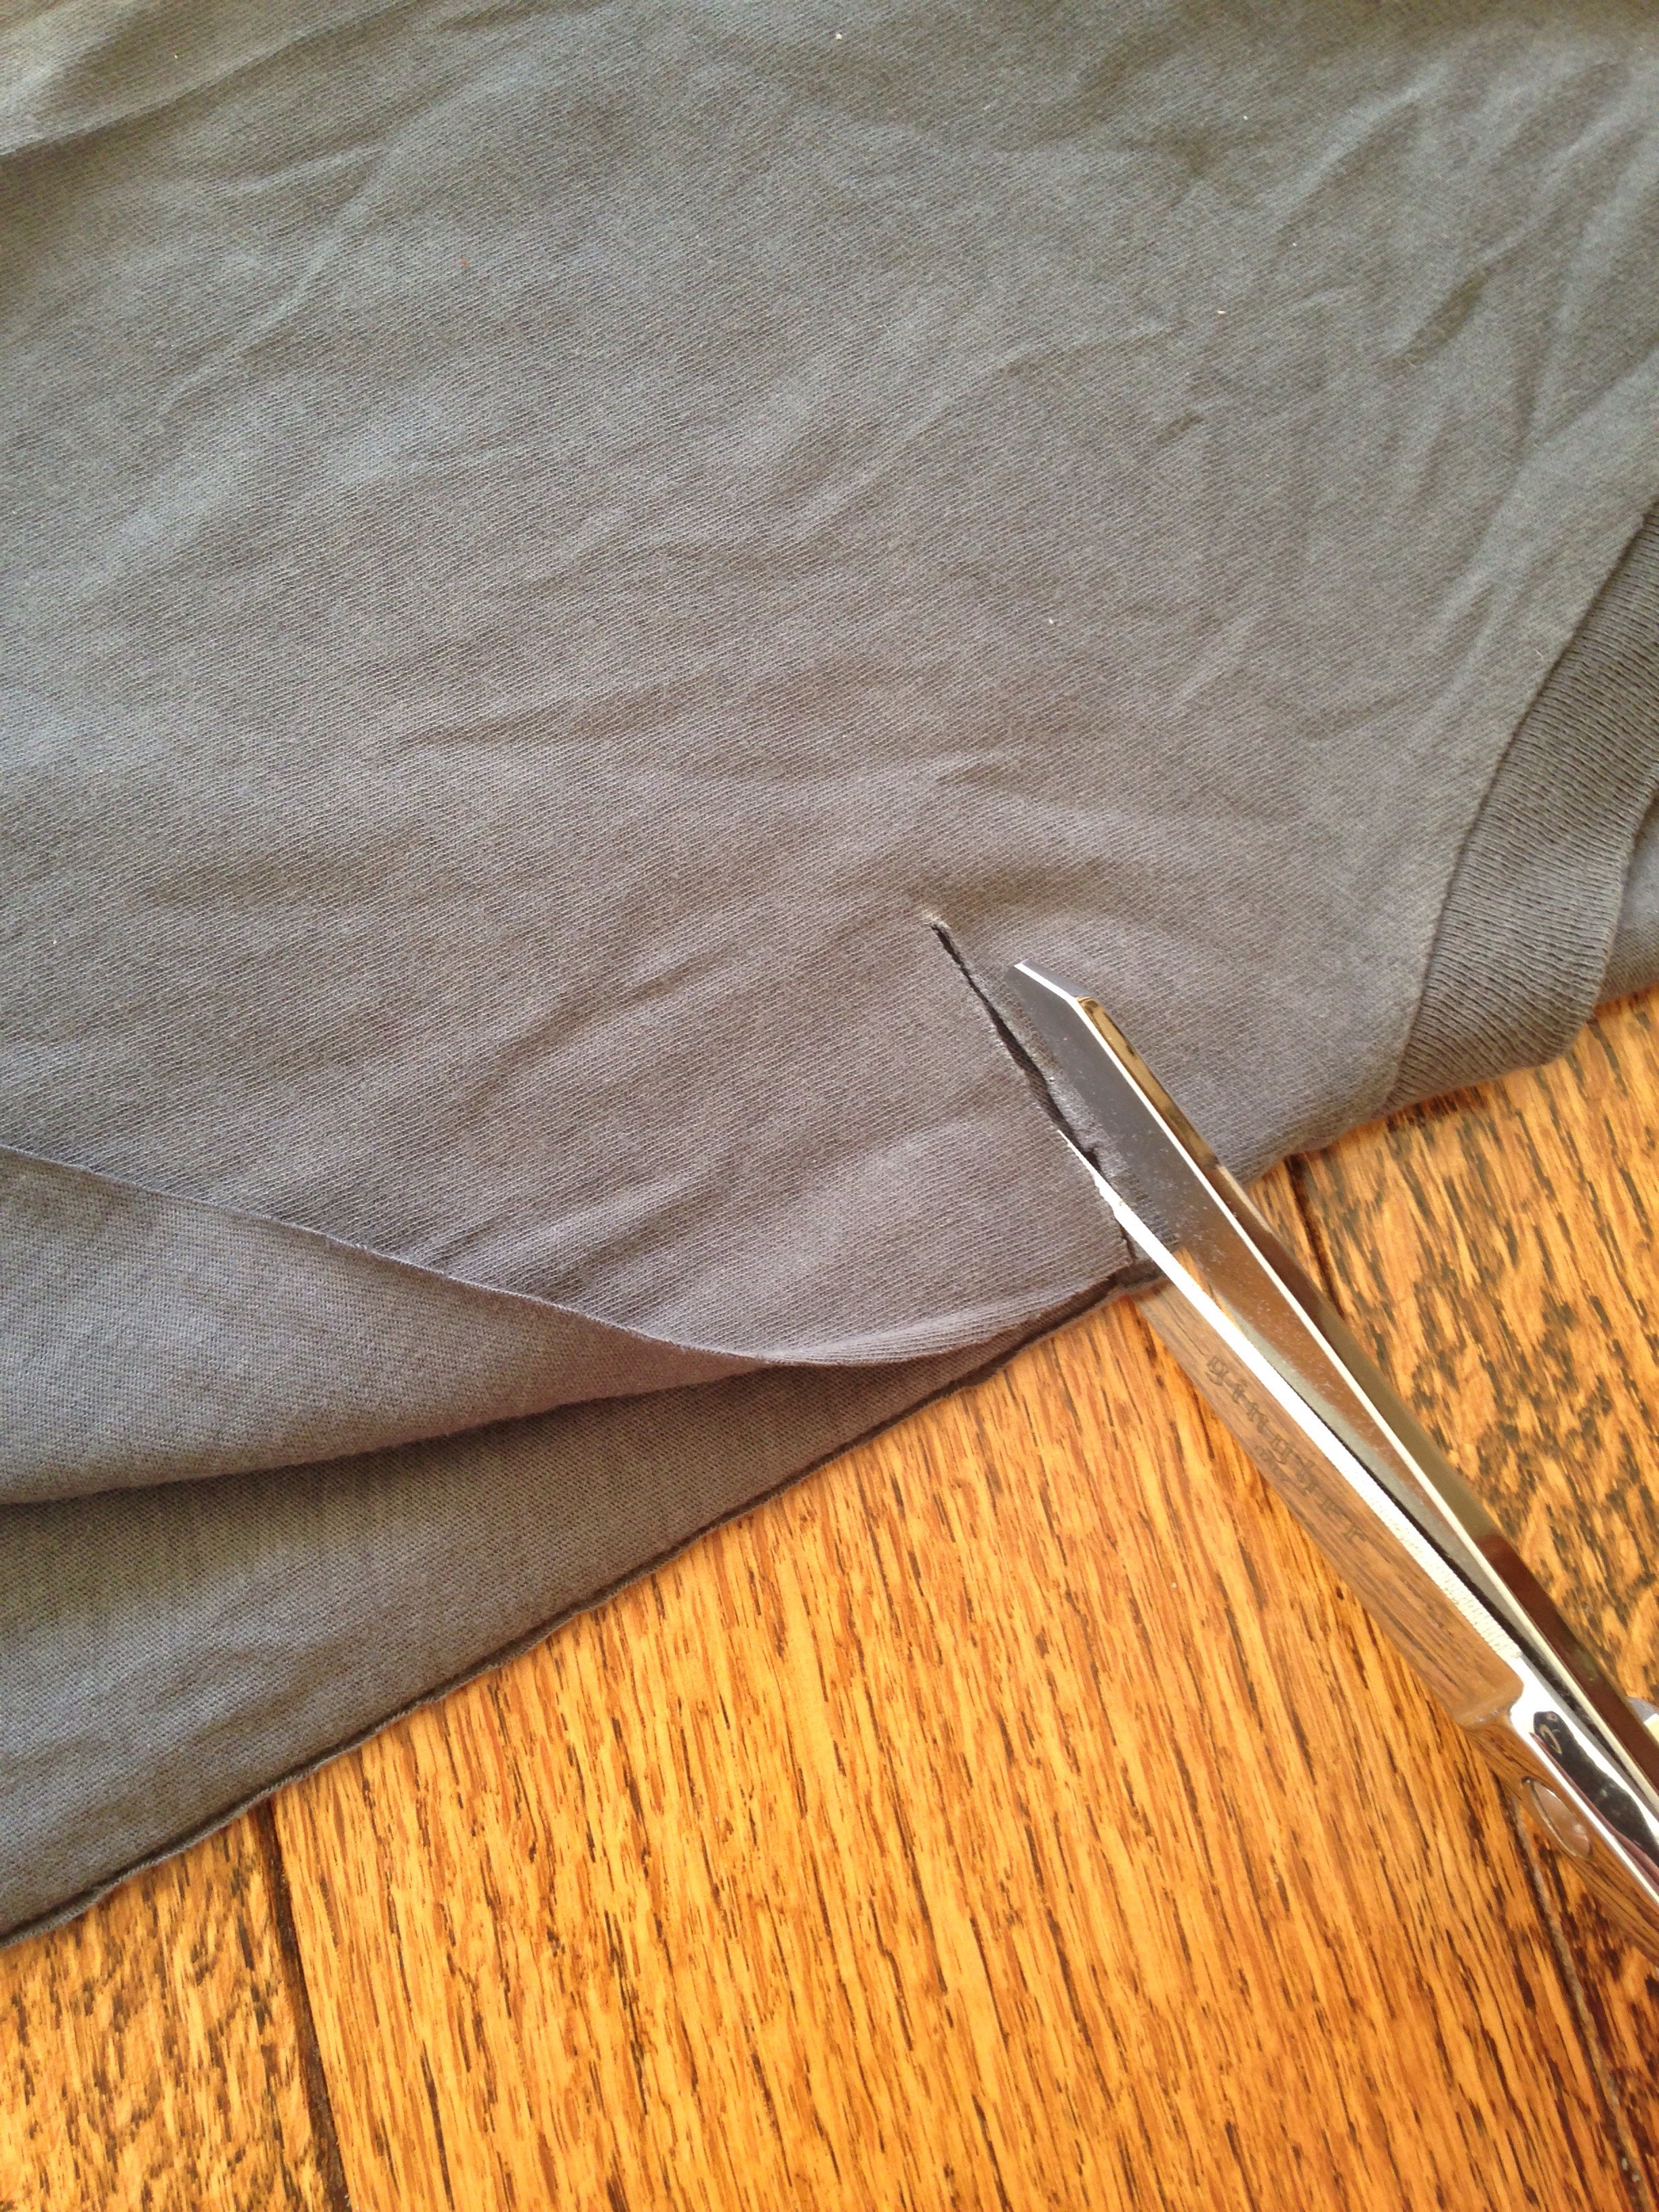 Picture of Cutting the Tee & Insert...